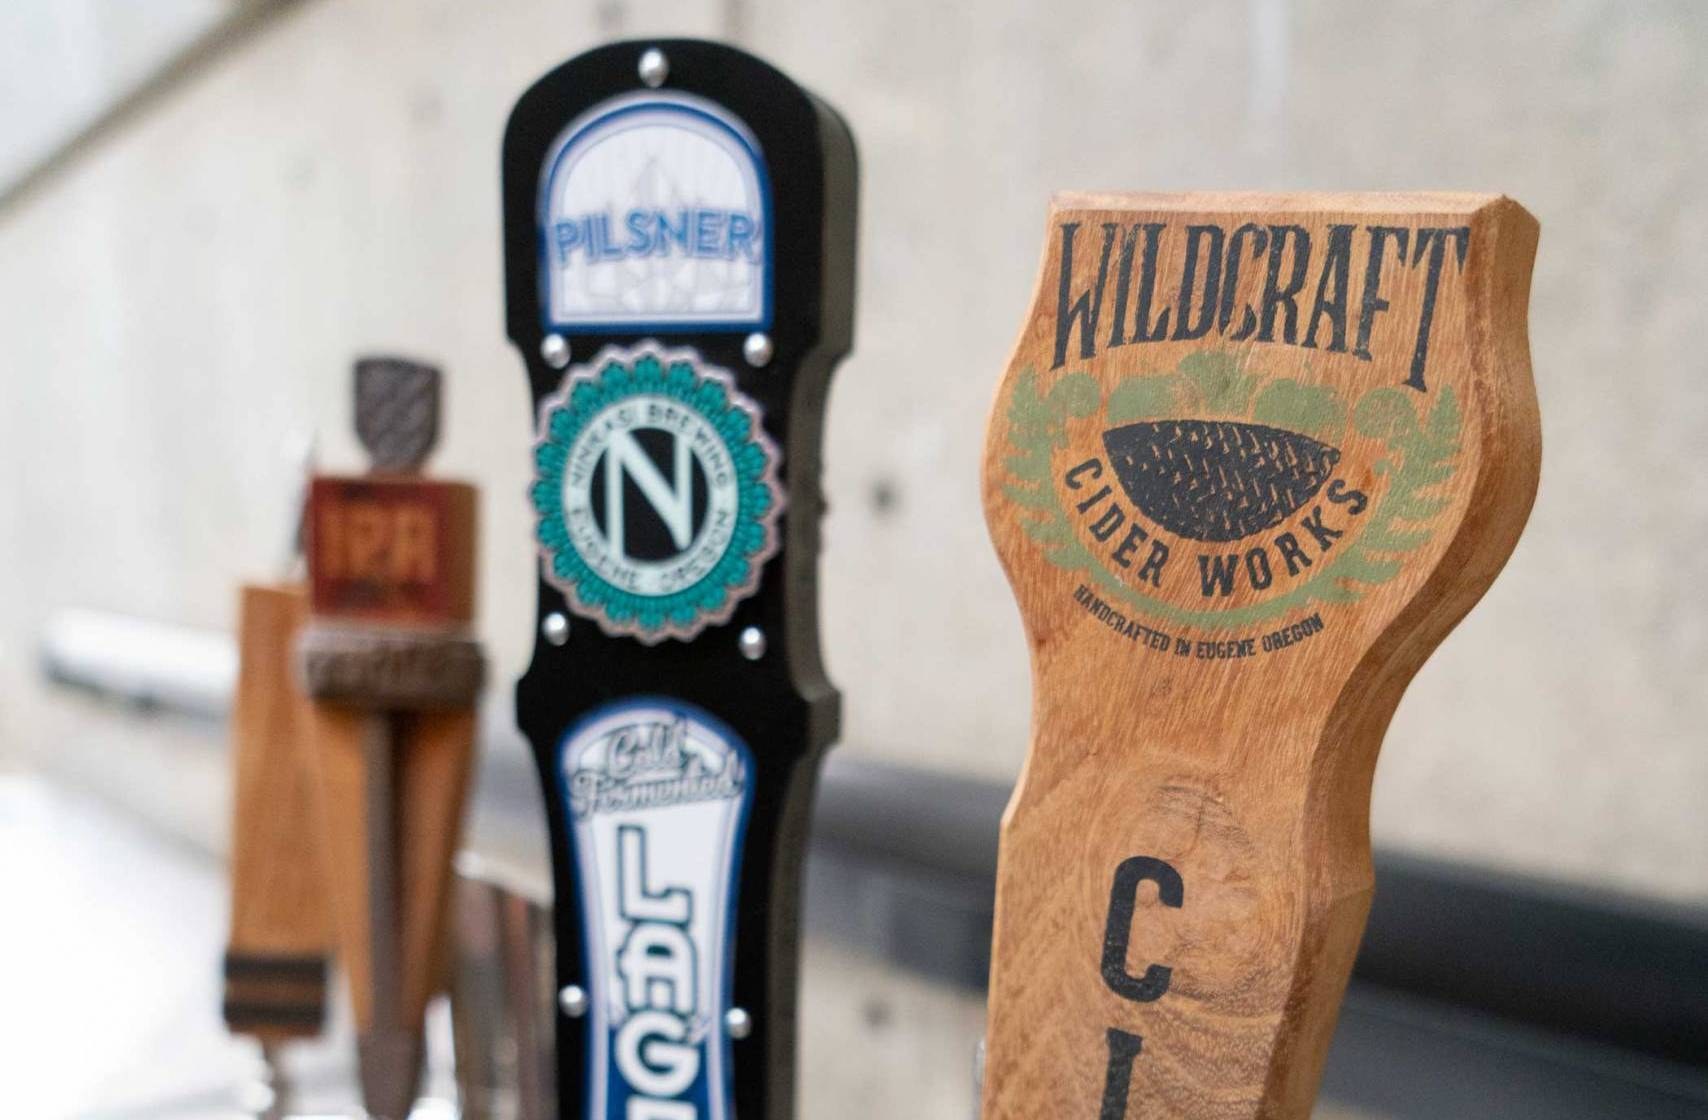 Local beer and cider tap handles